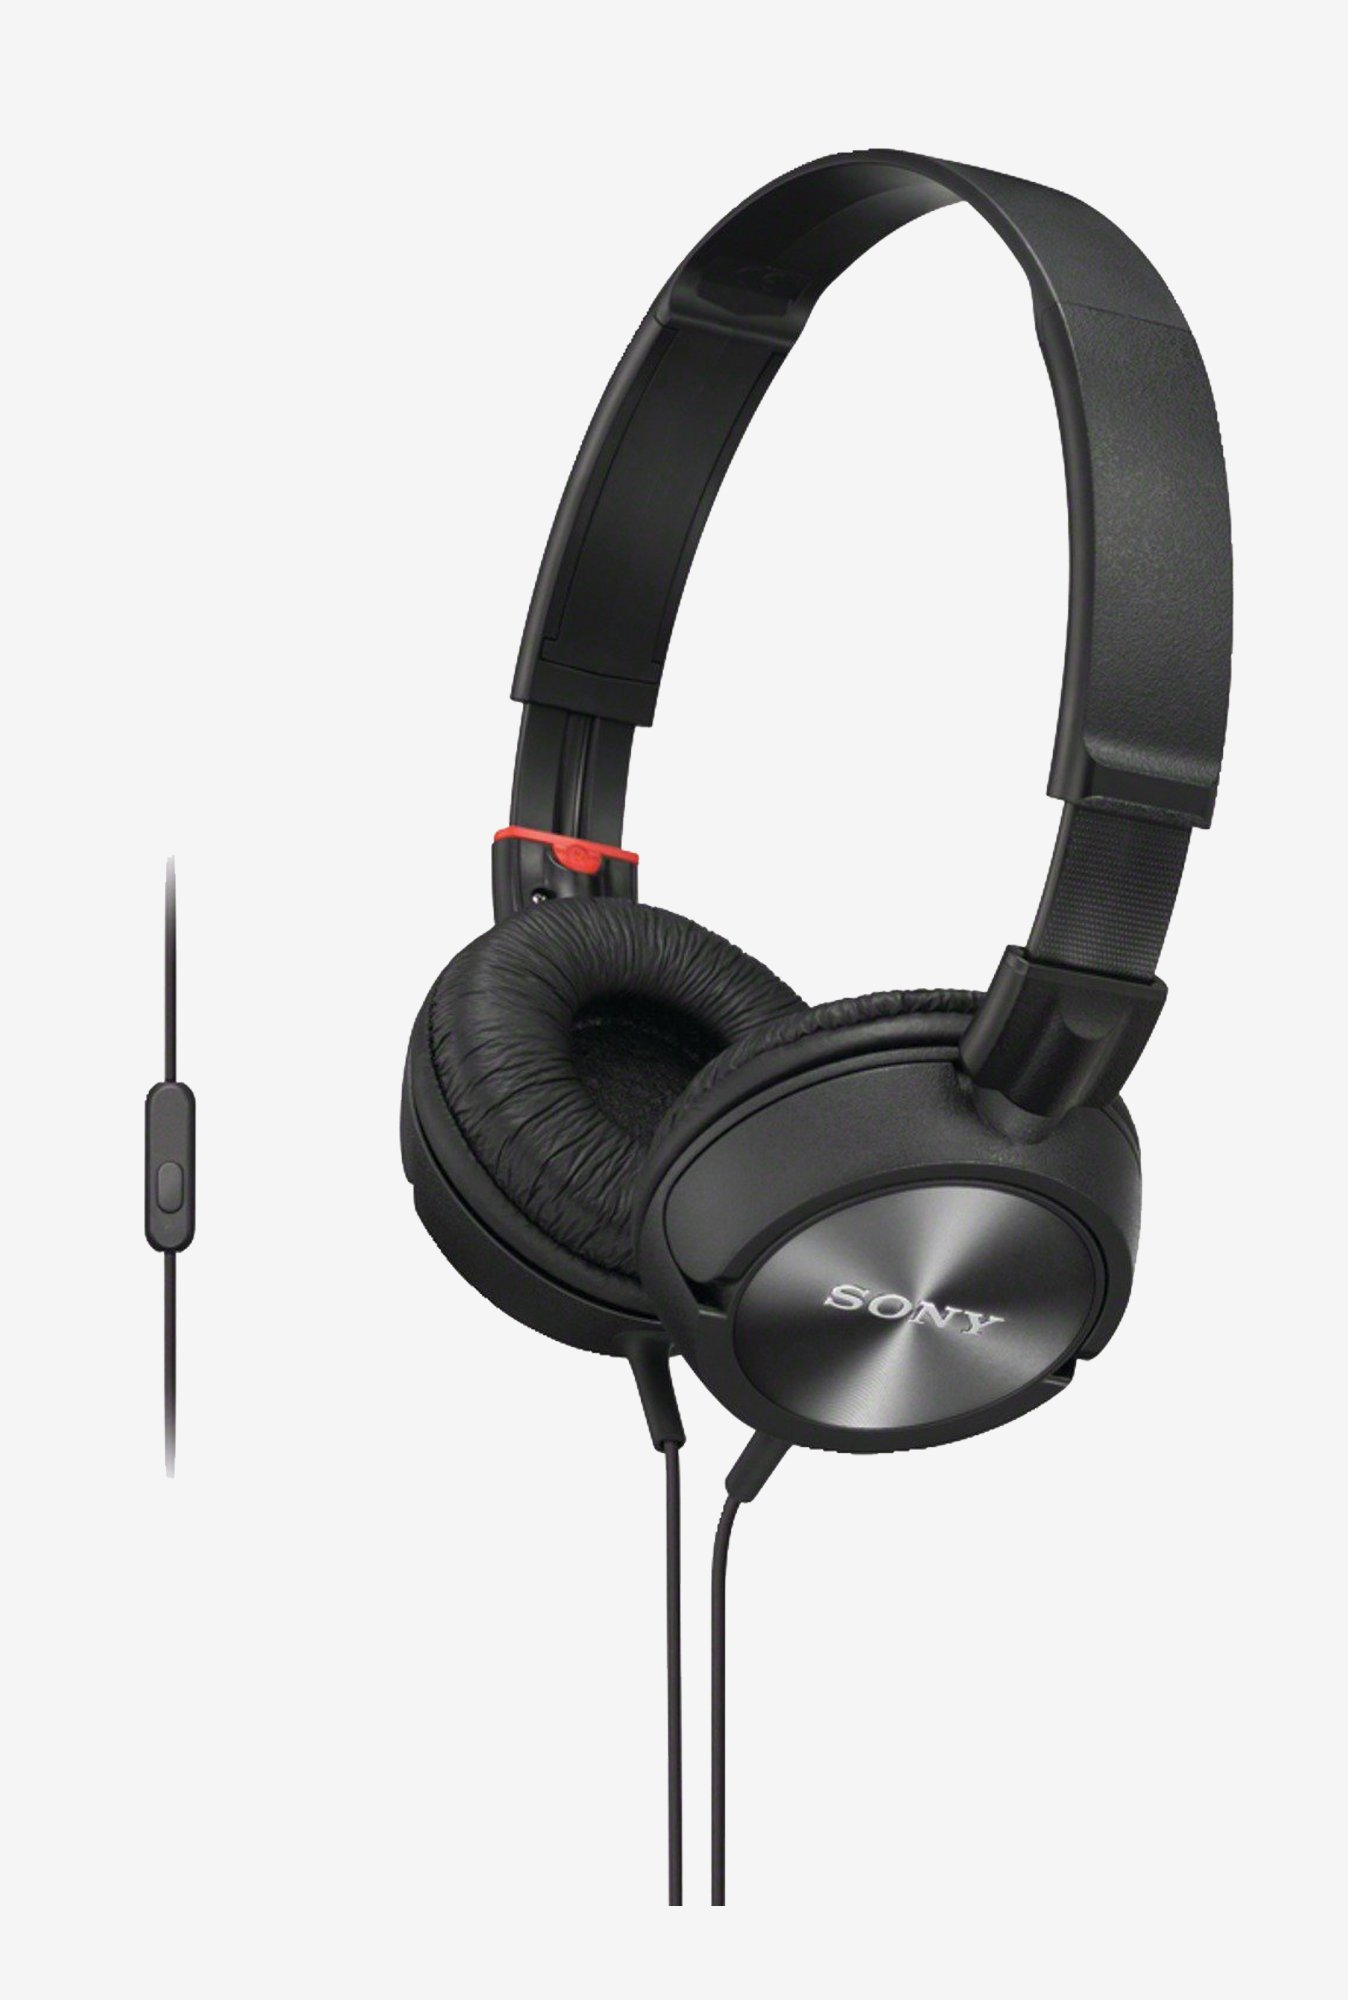 Sony MDR-ZX300AP Sound Monitoring Headphone With Mic (Black)